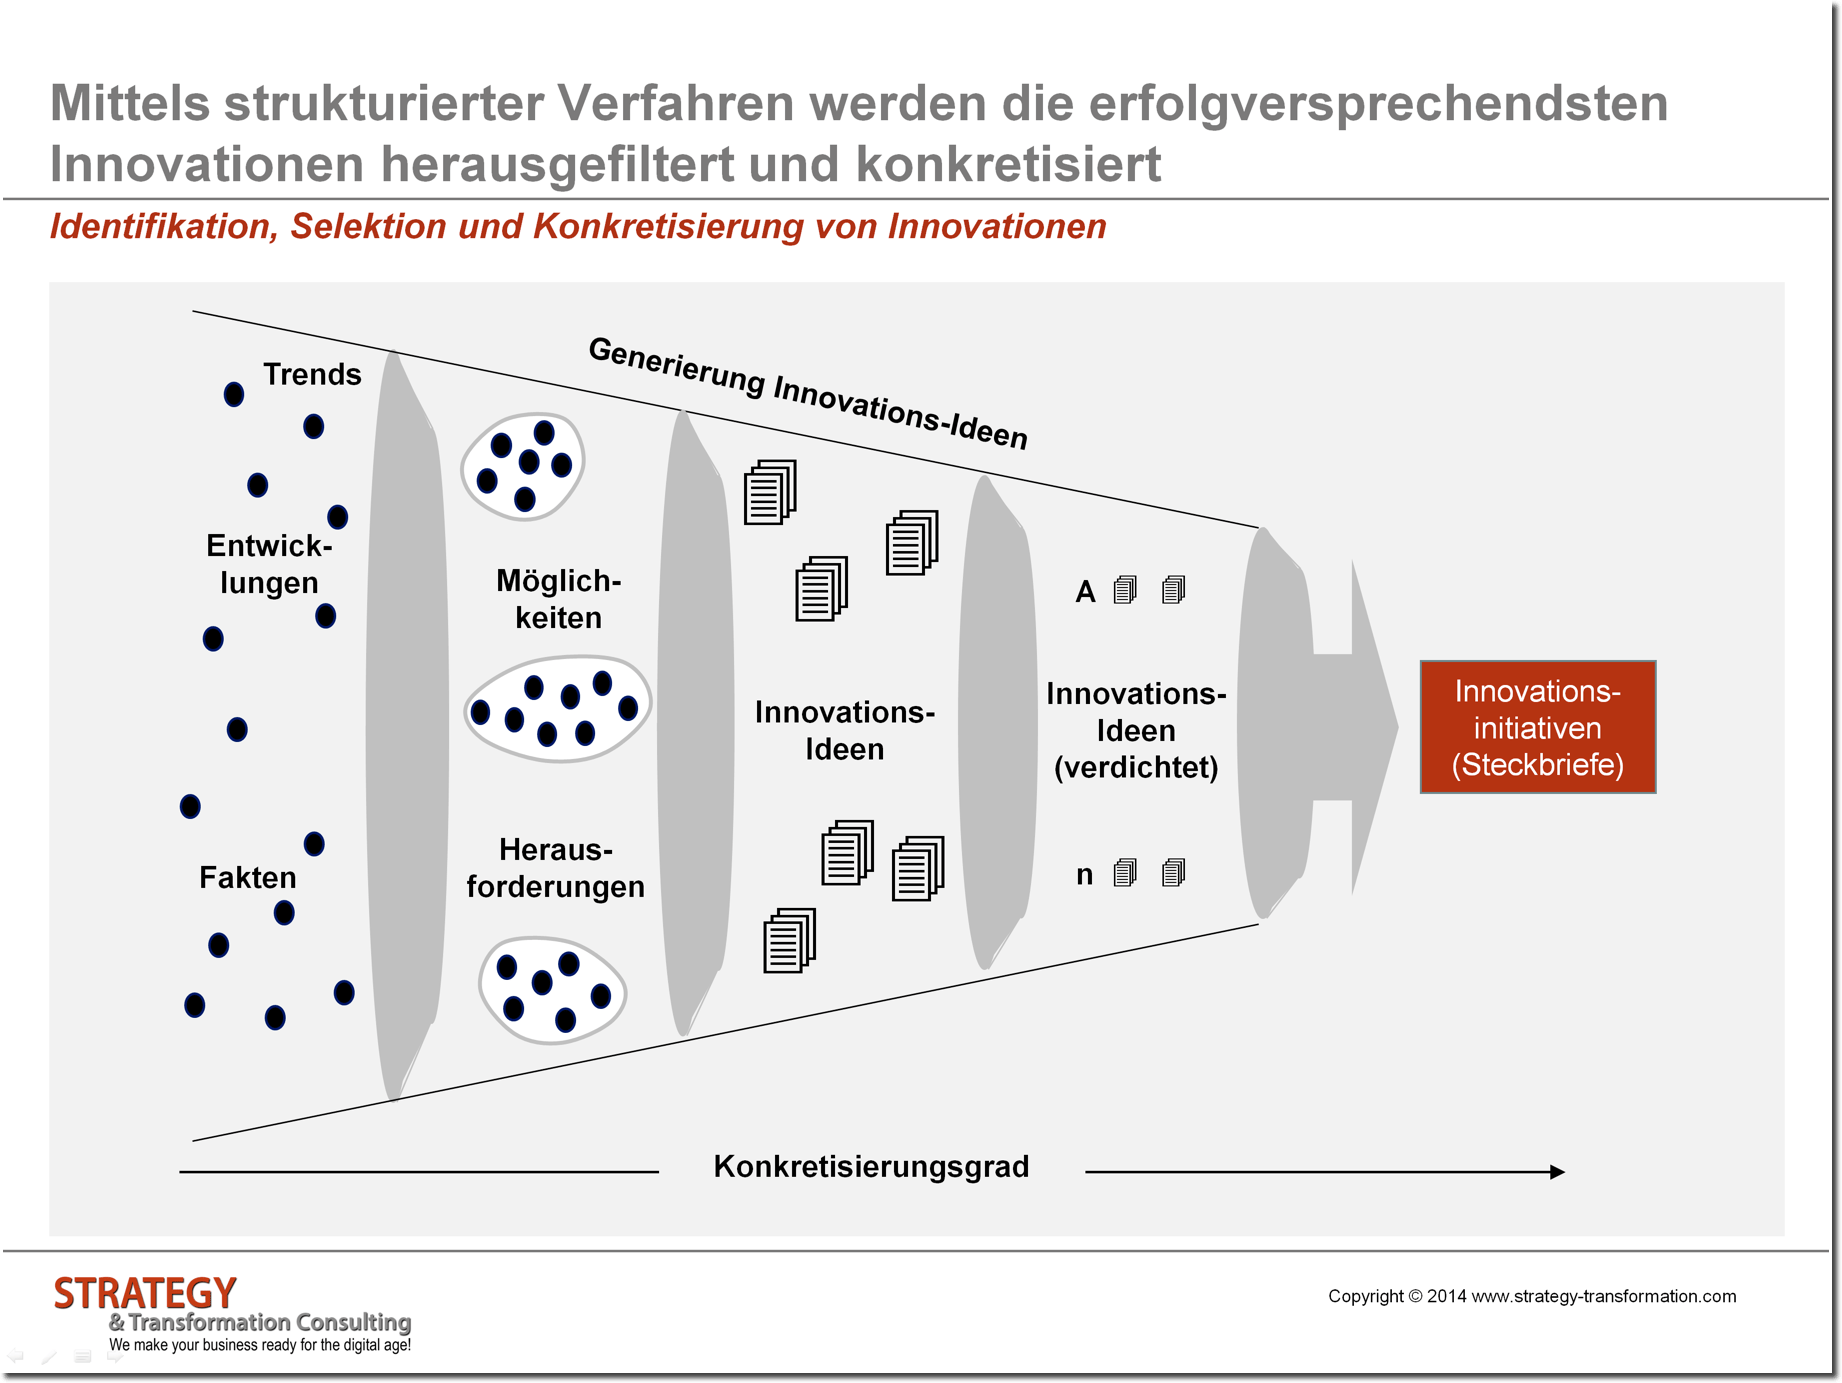 Identifikation von Innovationen